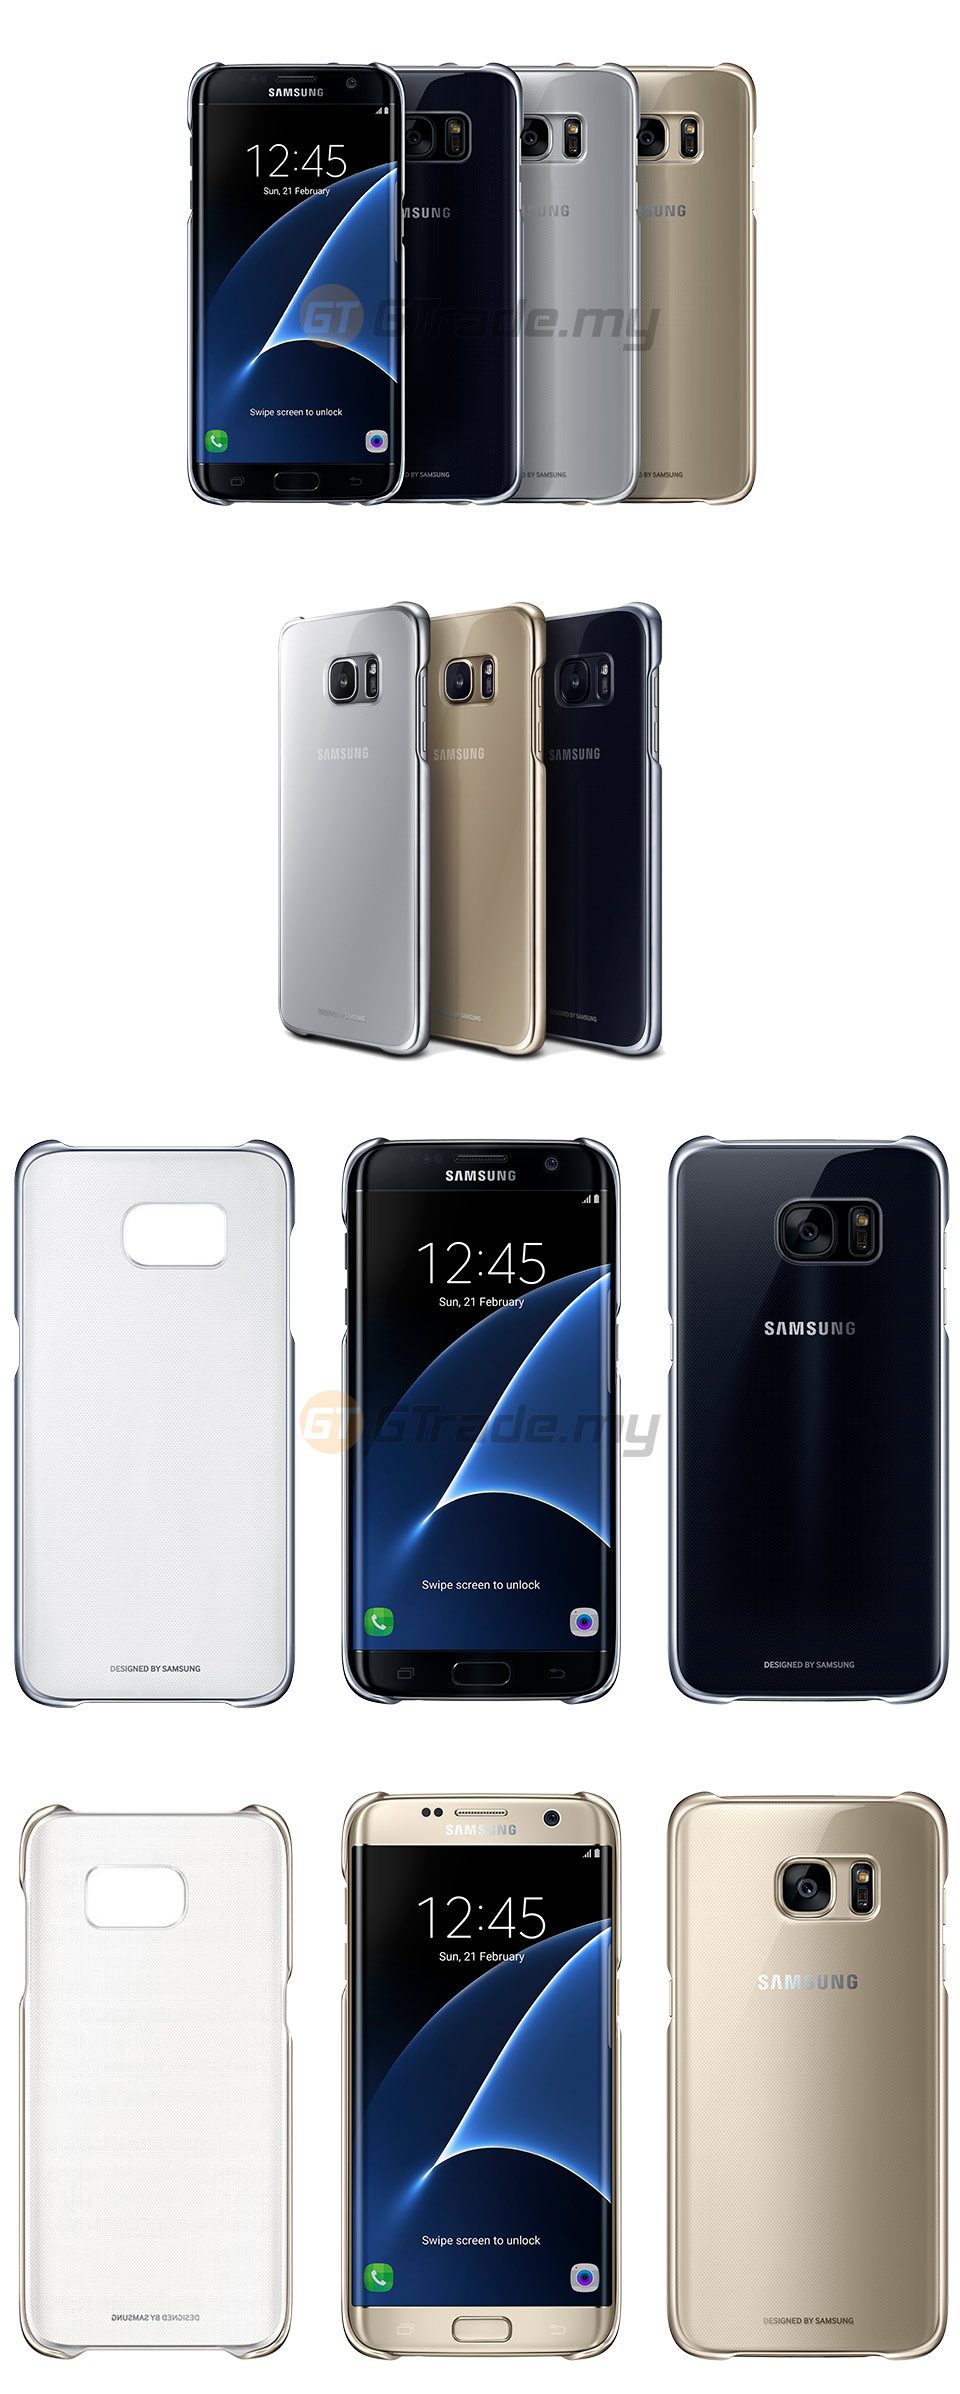 samsung-original-official-clear-back-cover-case-galaxy-s7-edge-p